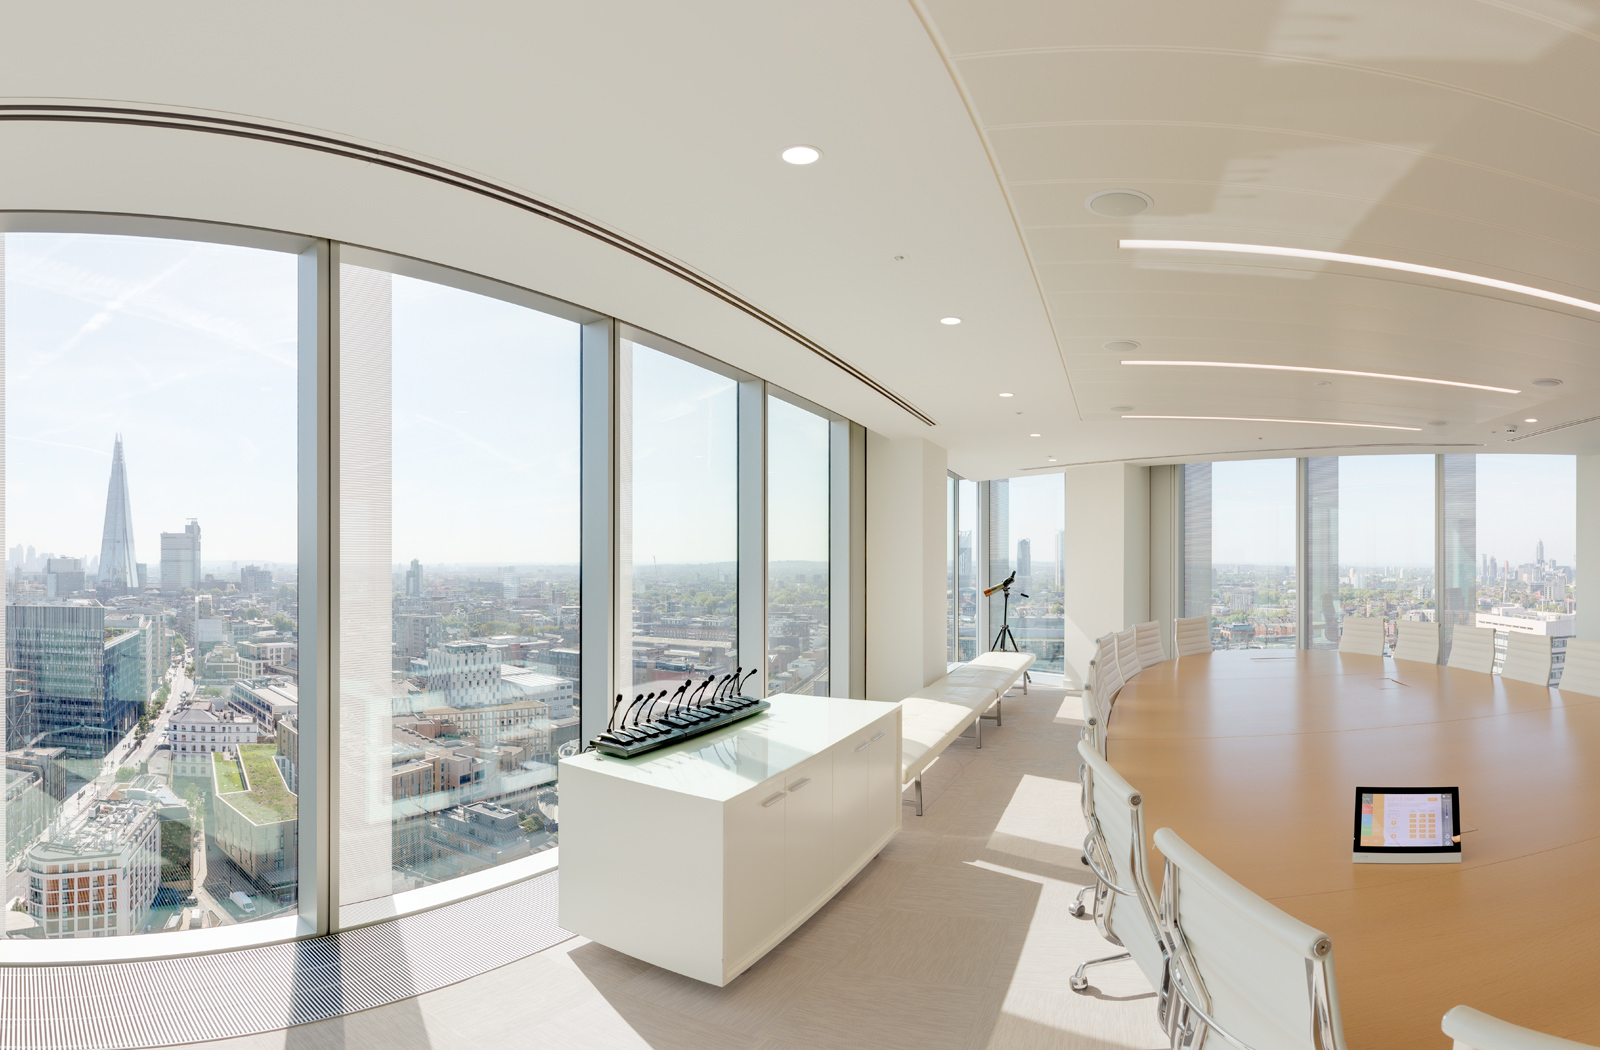 240 Blackfriars Office Virtual Tour